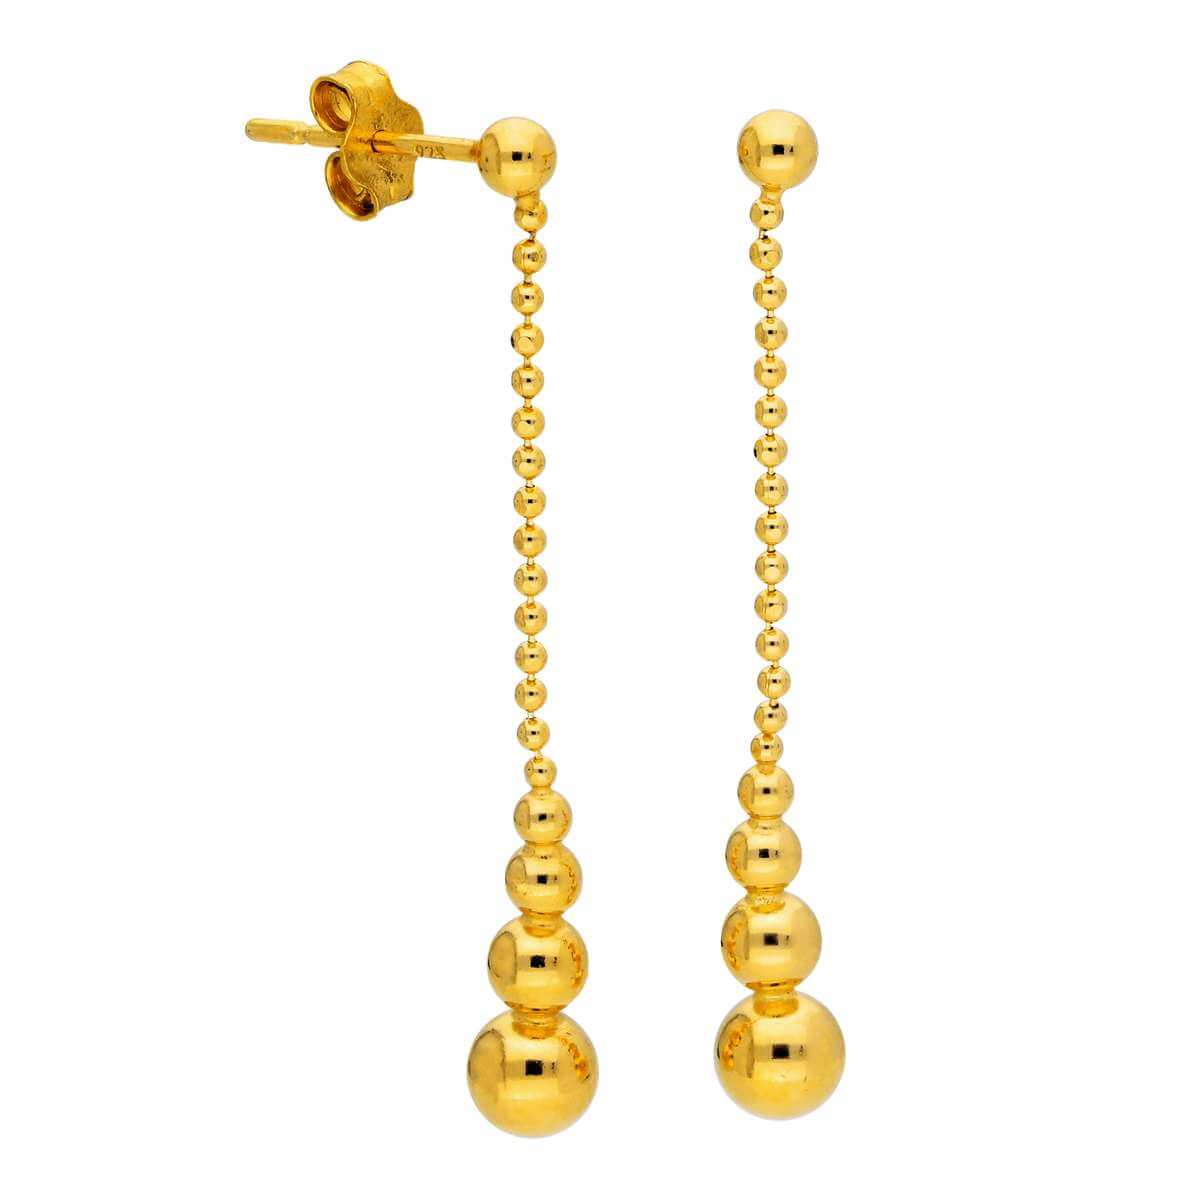 Gold Plated Sterling Silver Beaded Ball Drop Stud Earrings